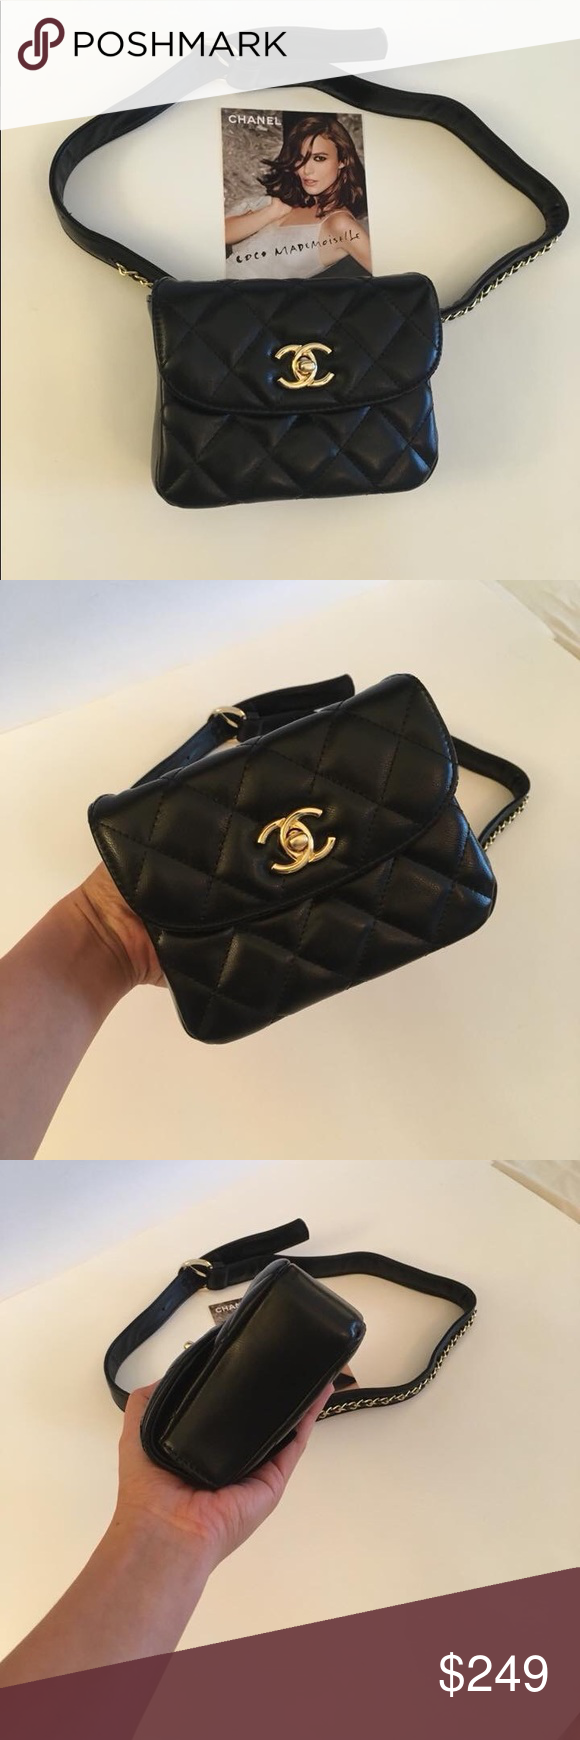 72de75917ebe Chanel VIP Gift Fanny Pack Waist Belt Quilted Bag Brand new. Beautiful VIP  gift fanny